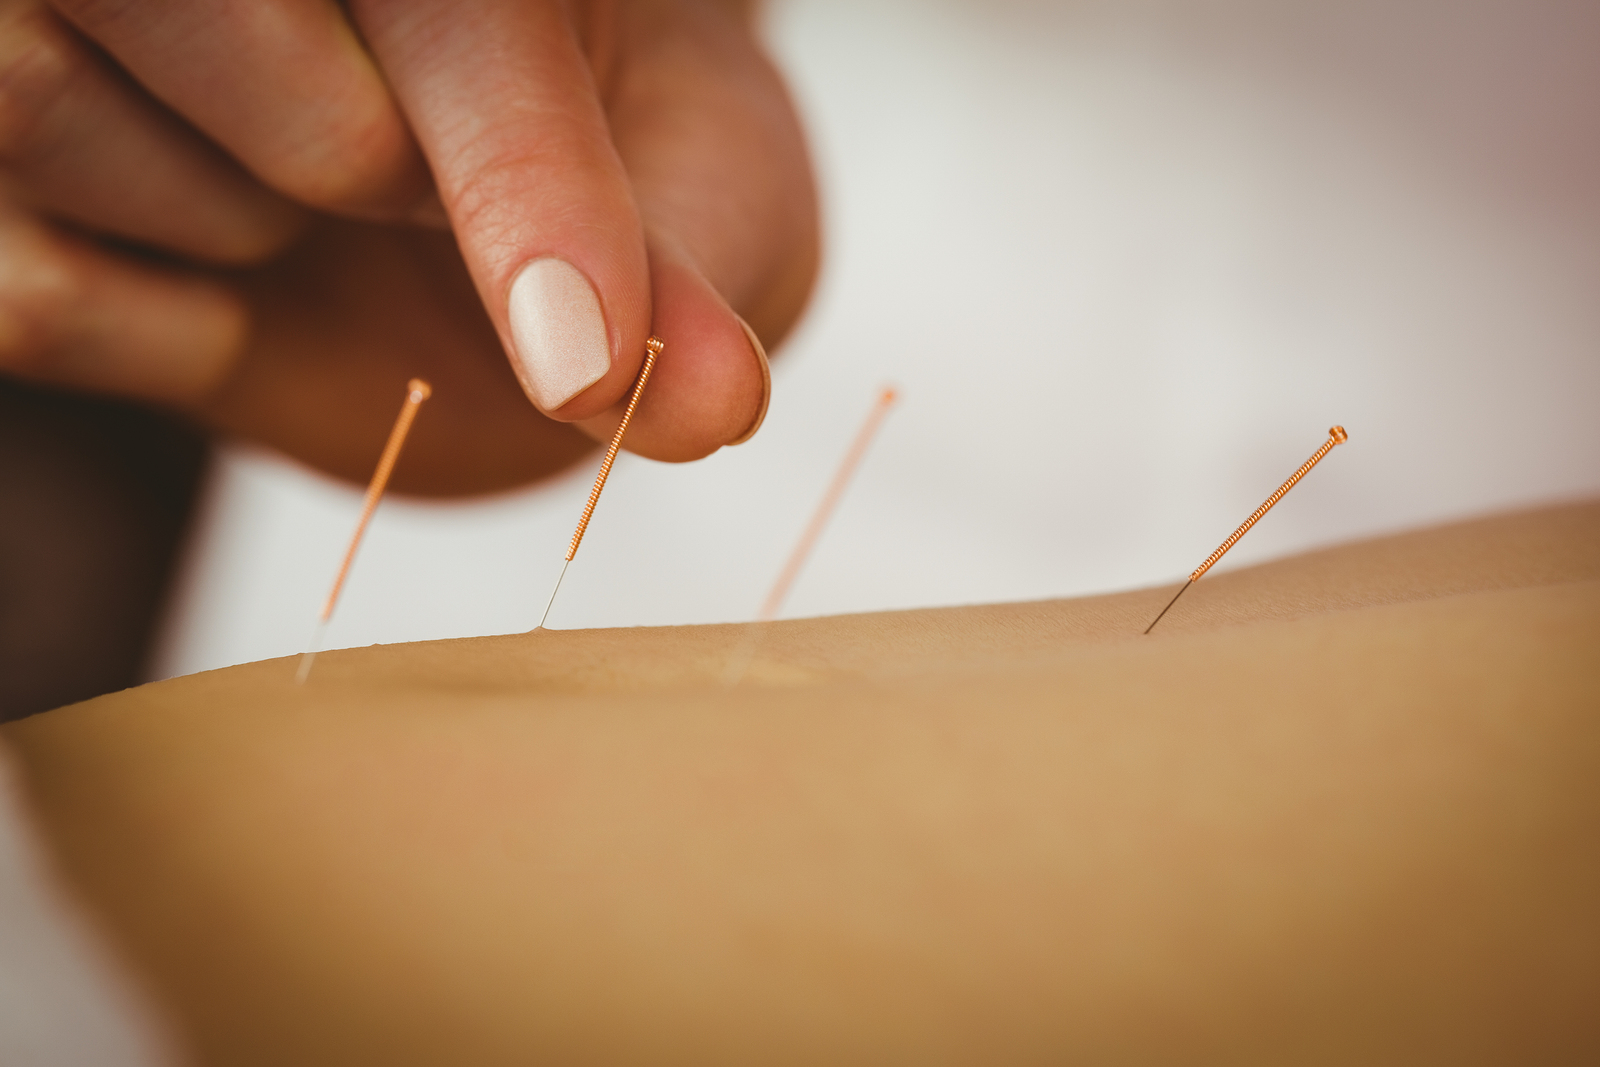 Acupuncture :Understanding What the Needle Poke Can Evoke